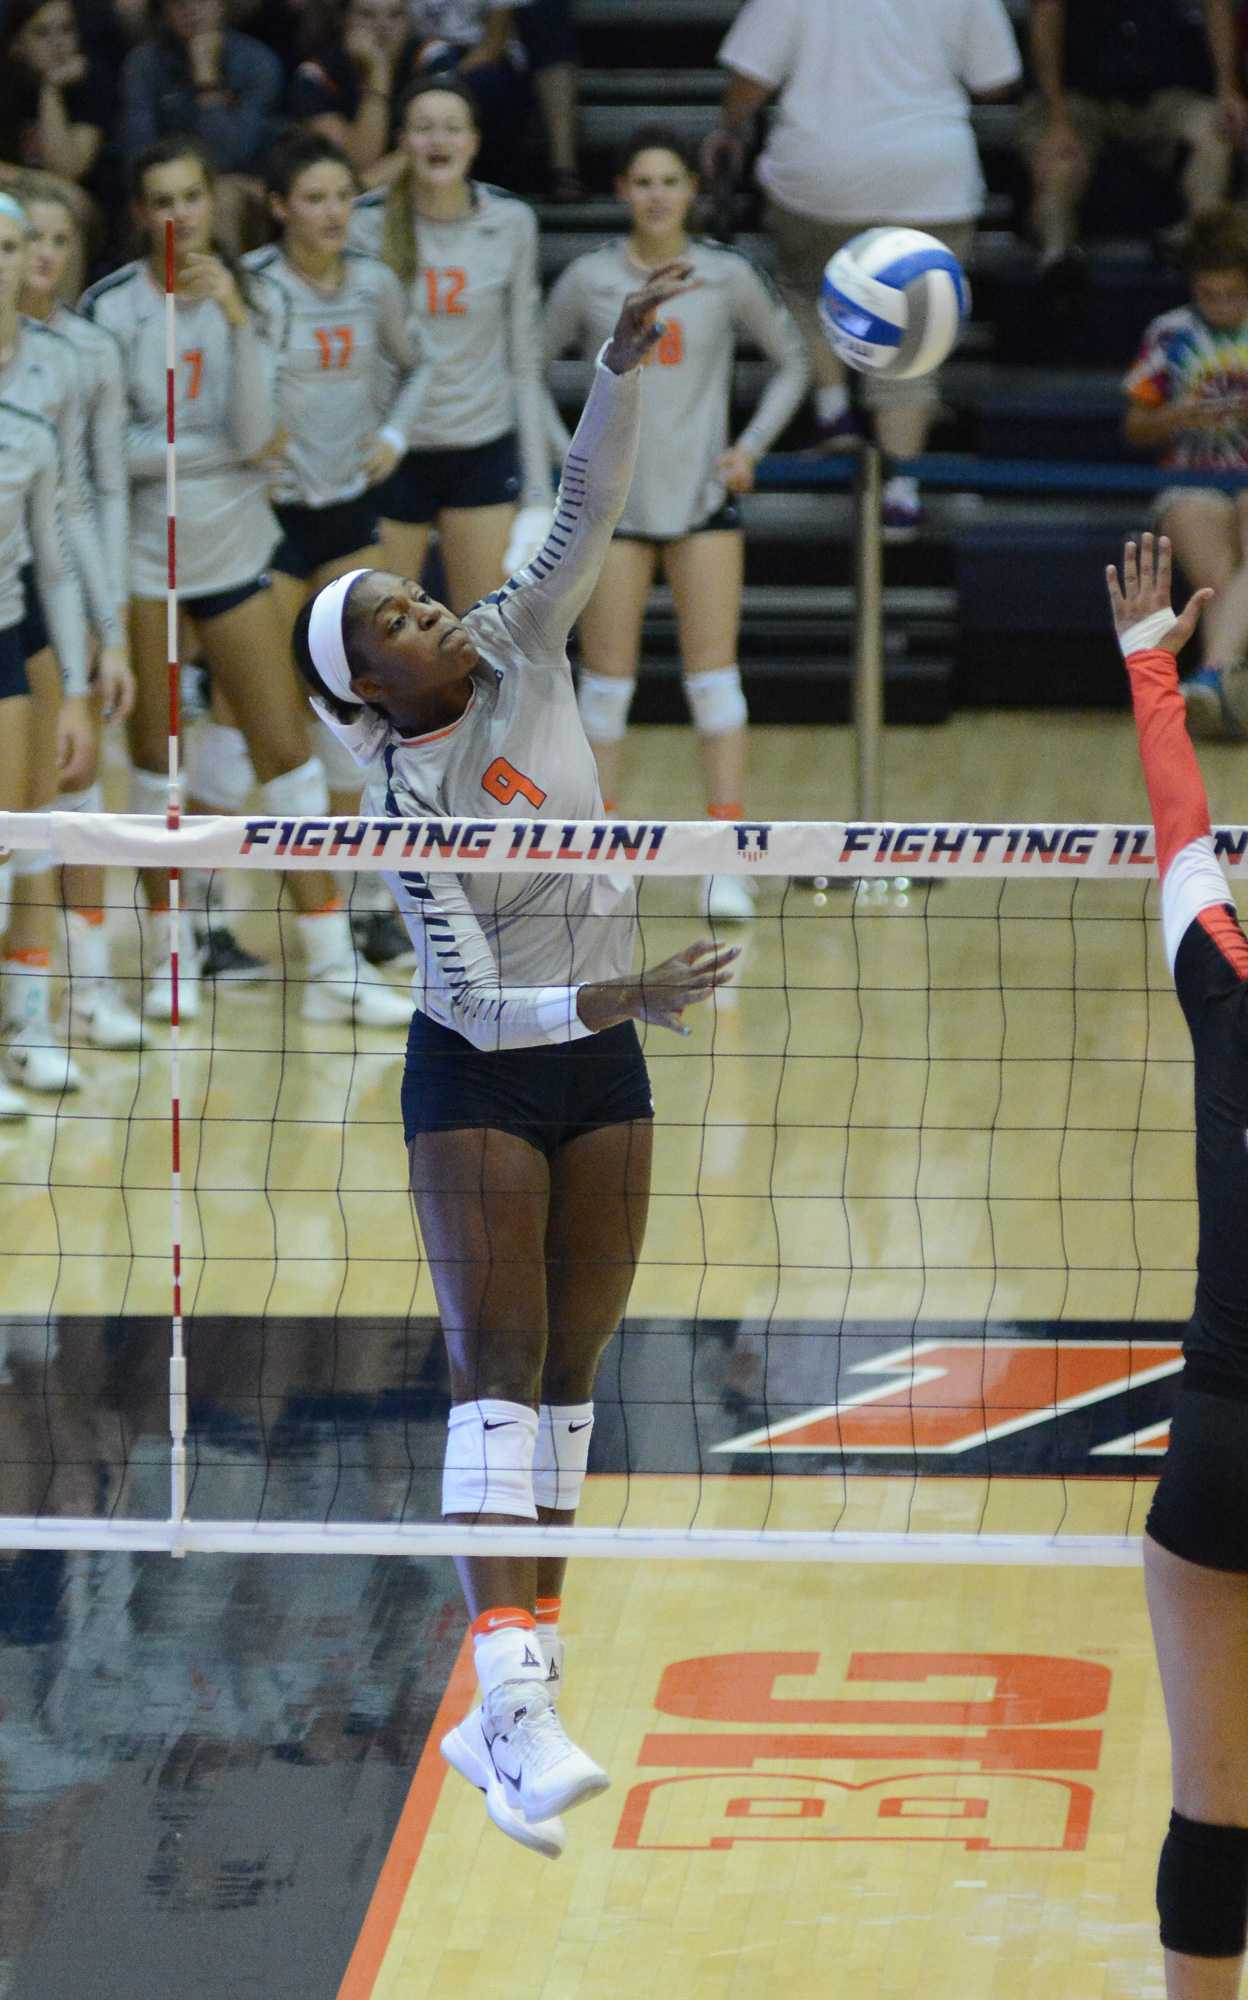 Illinois' Naya Crittenden attempts to spike the ball during the match against Rutgers at Huff Hall on September 24. The Illini won 3-0.